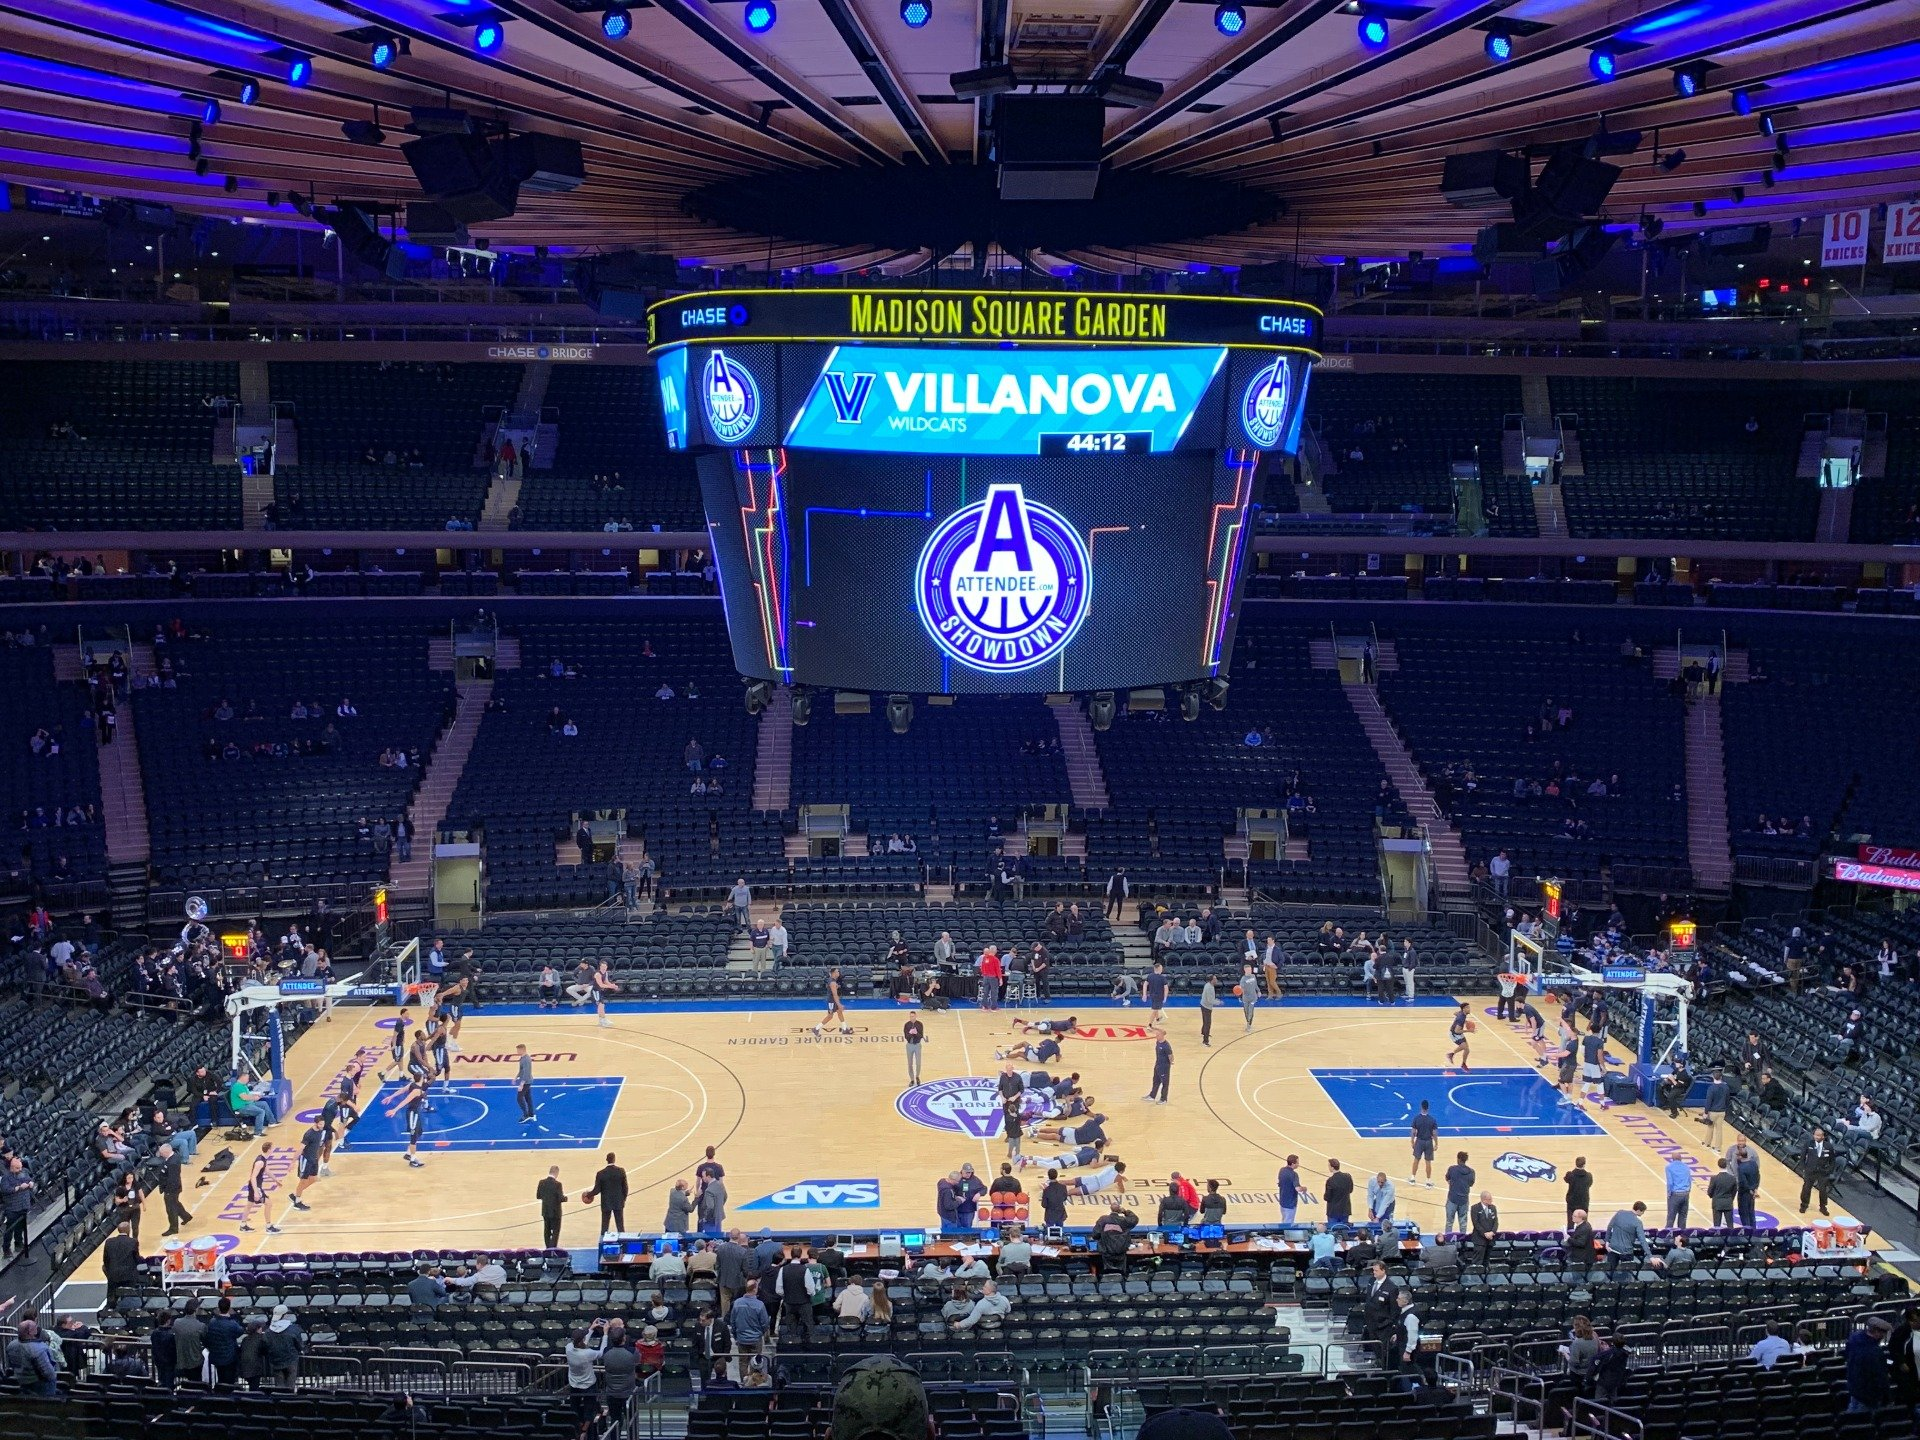 Madison Square Garden Section 211 Row 6 Seat 3